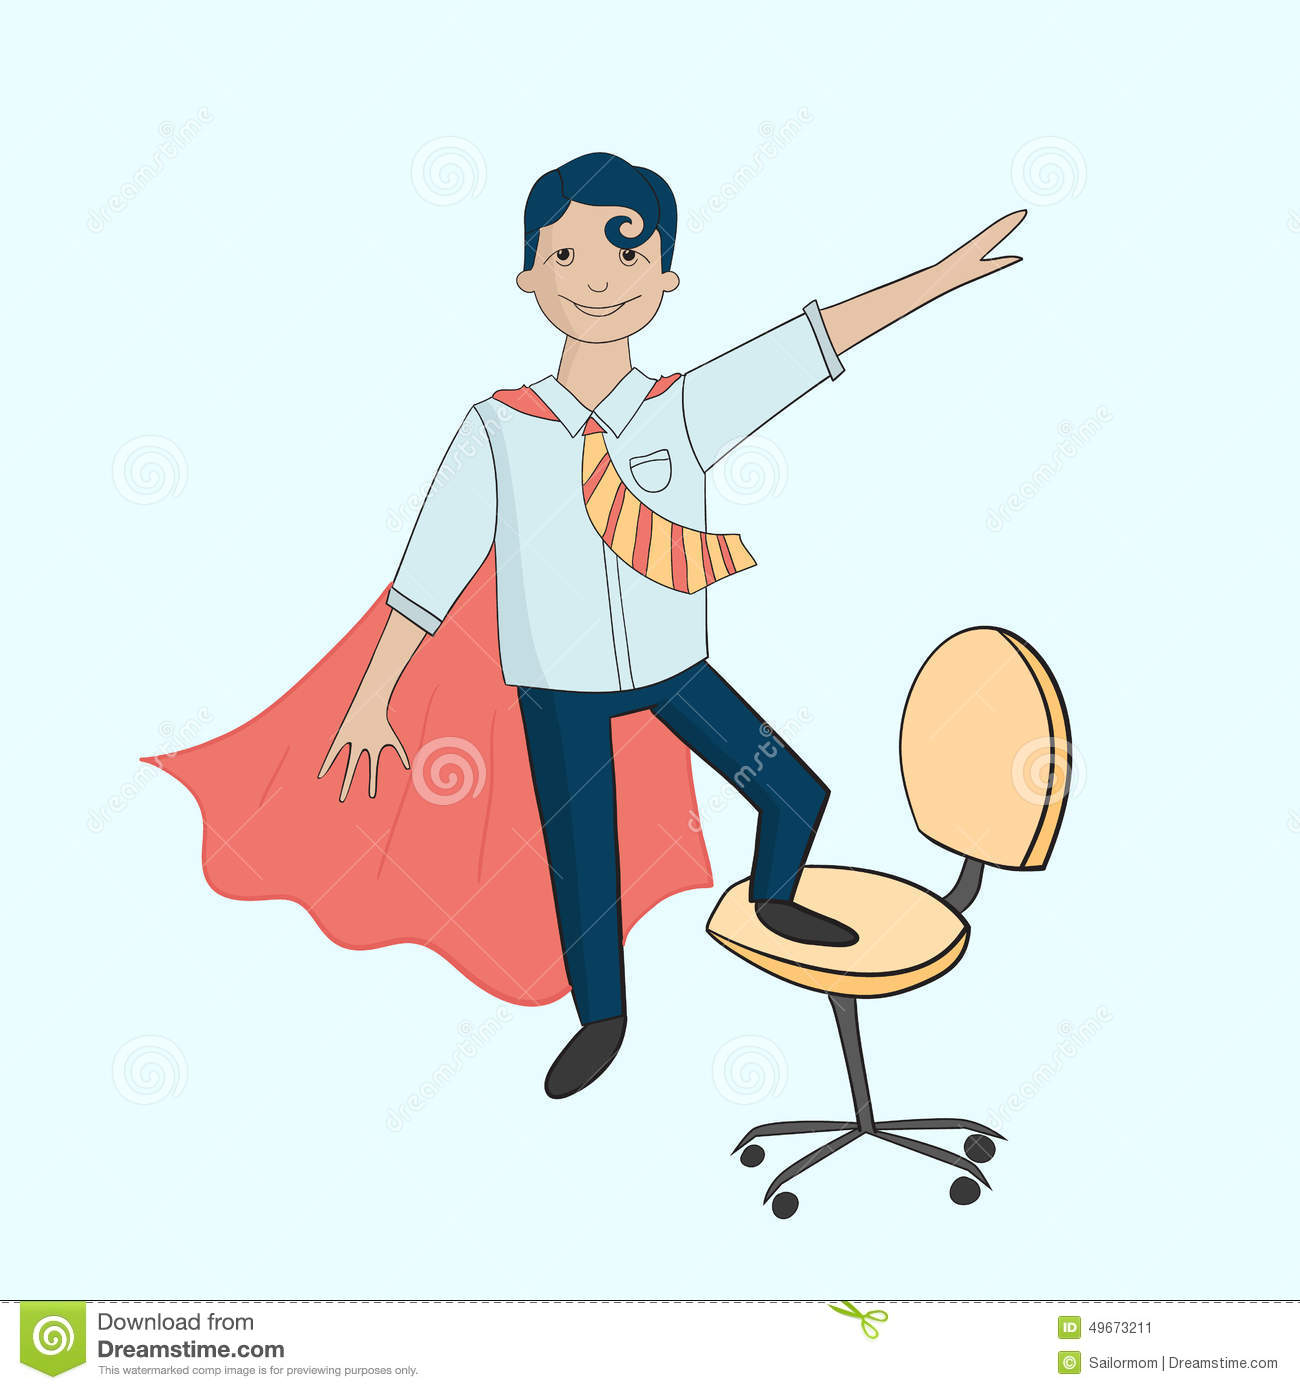 Super Heros De Bureau Sur La Chaise Illustration De Vecteur